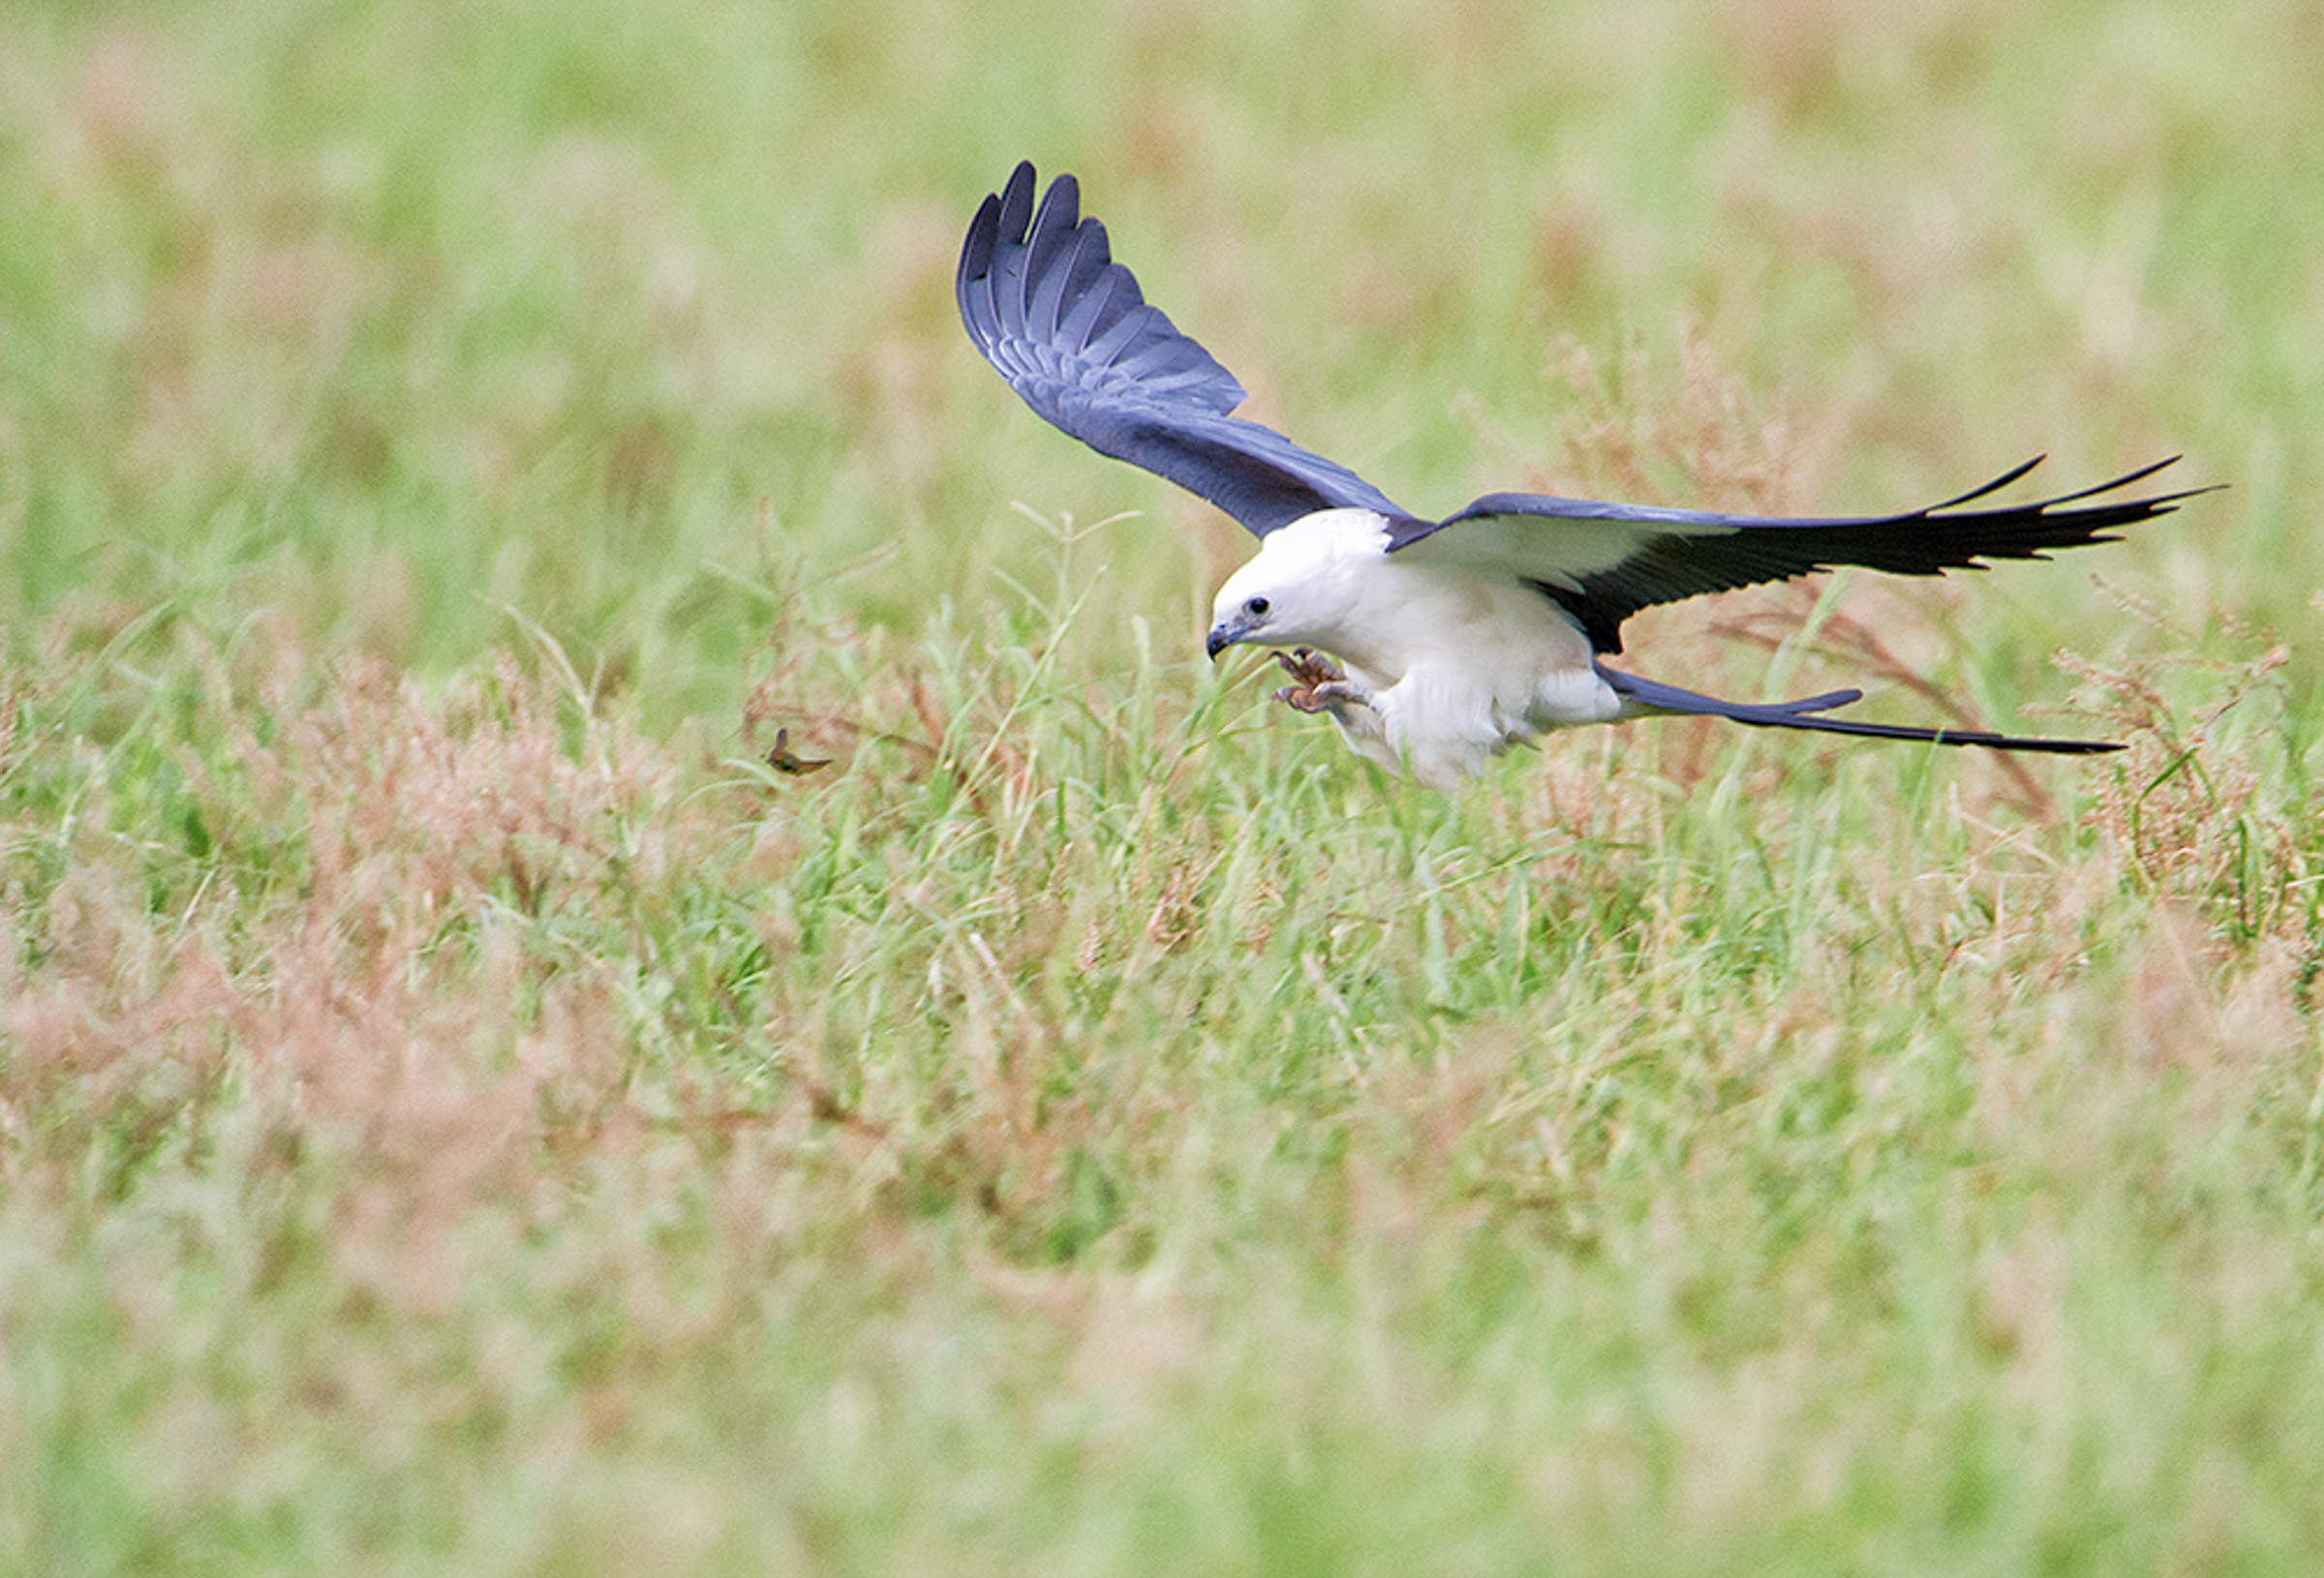 Hovering over an green field of grass, a Swallow-tailed Kite, white plumage , black eyes, black outline of wings and tail grabs an insect in mid air